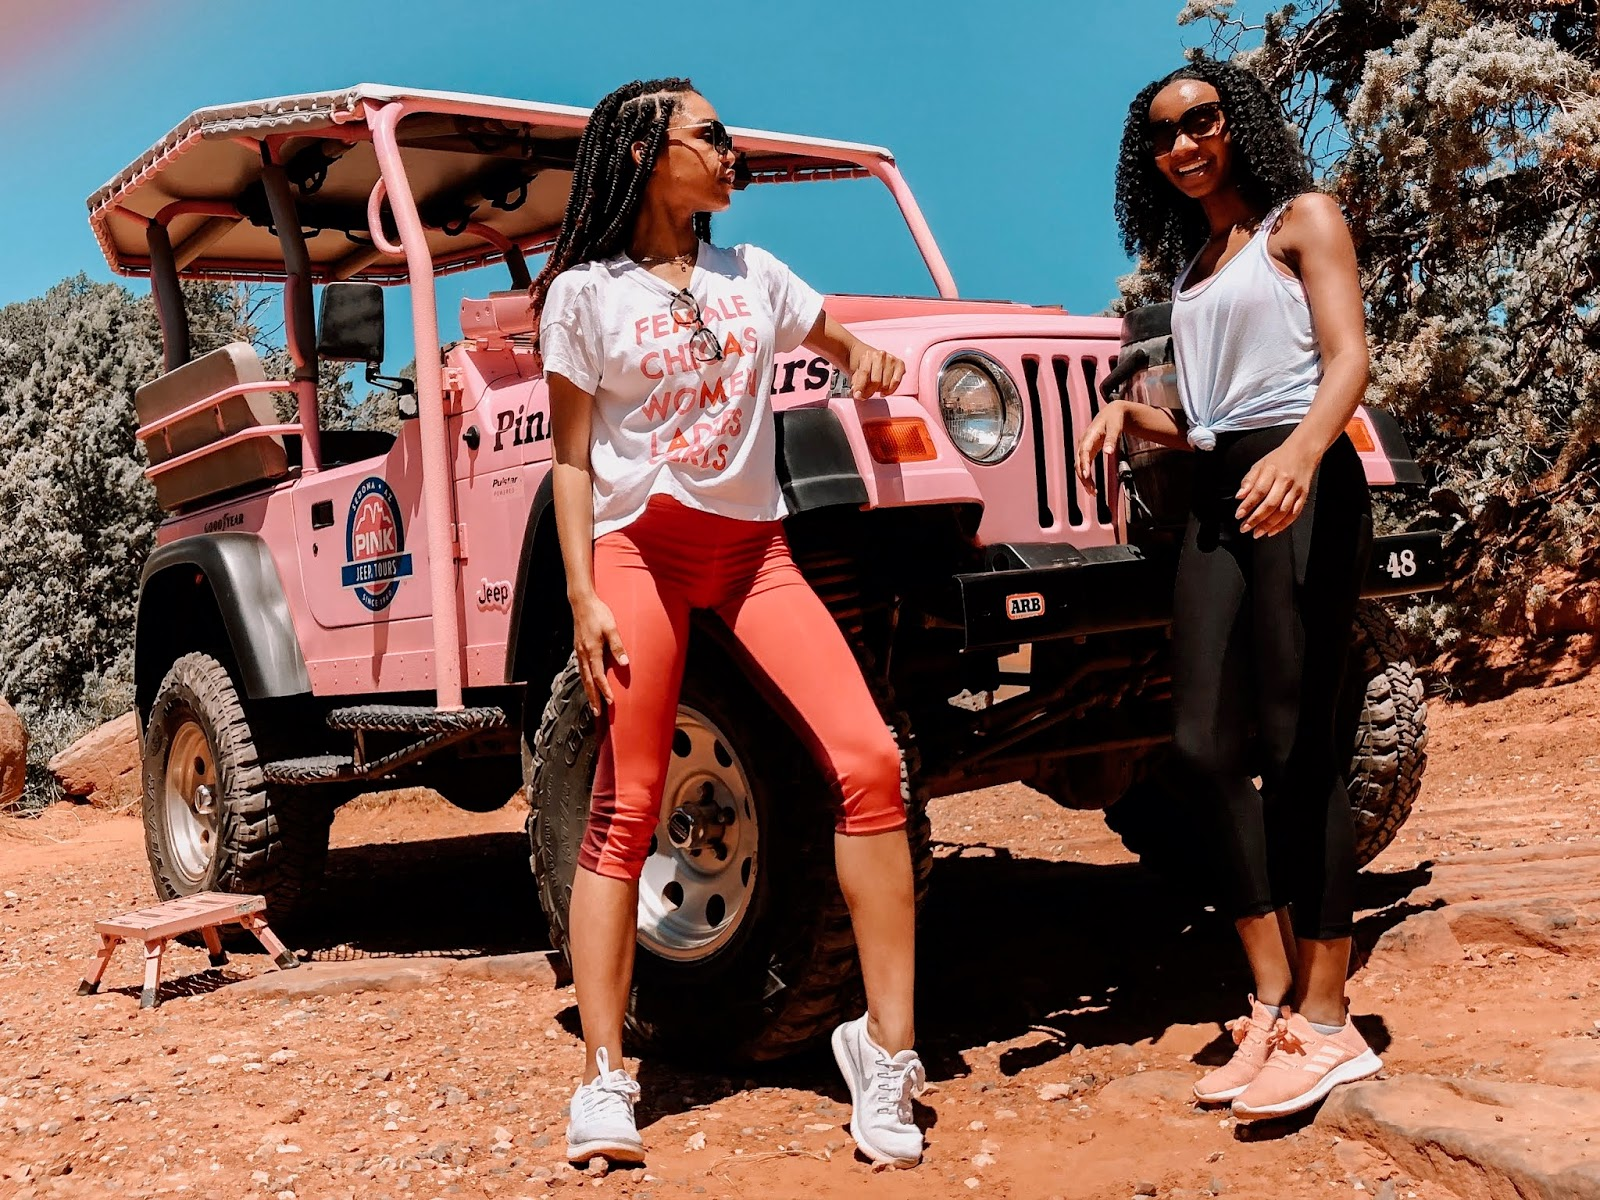 Posing in front of a pink jeep before the scenic rim tour